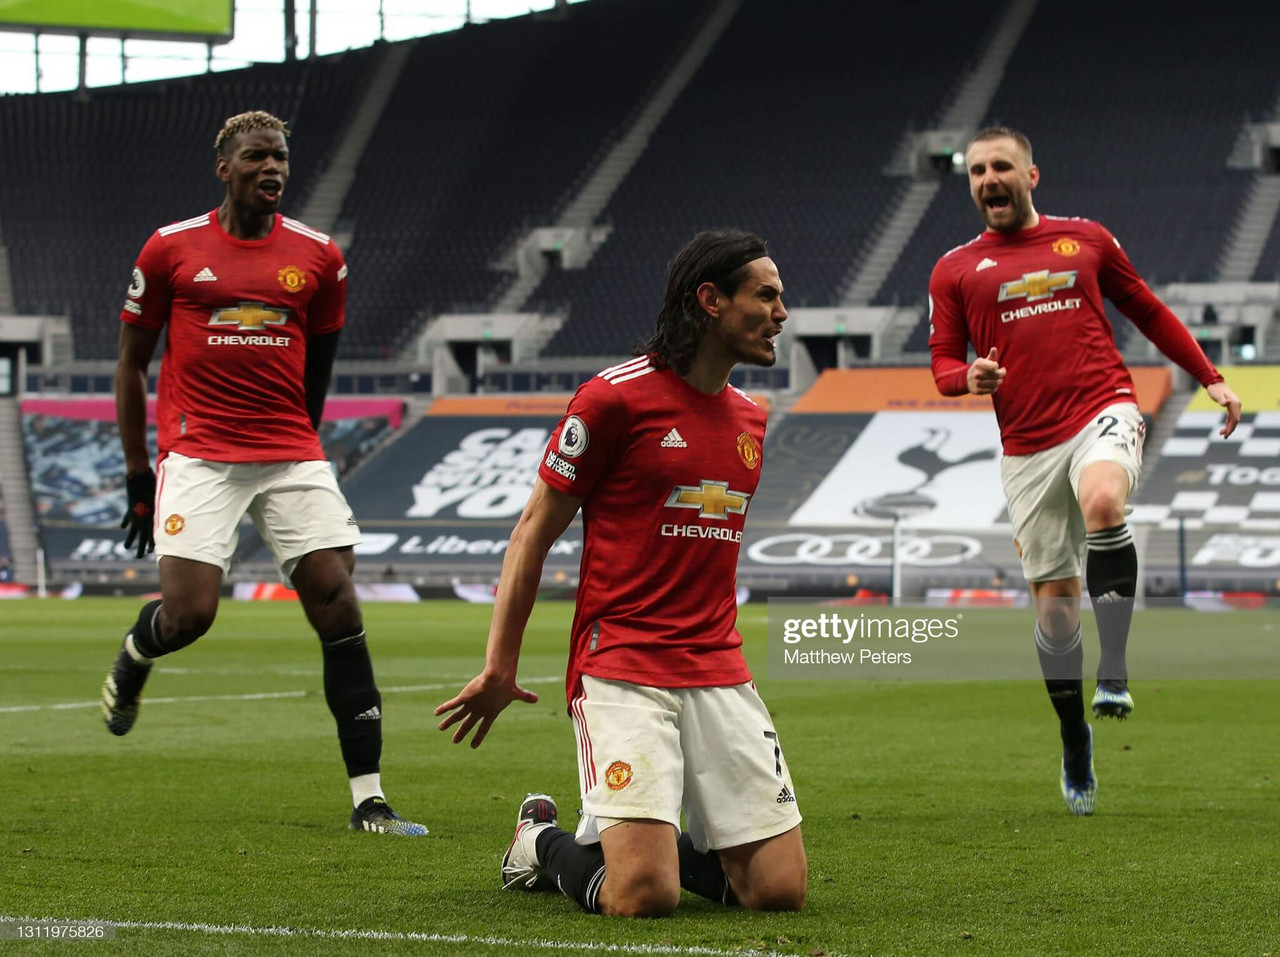 Tottenham Hotspur 1-3 Manchester United: Cavani header turns it around during best display as a United player